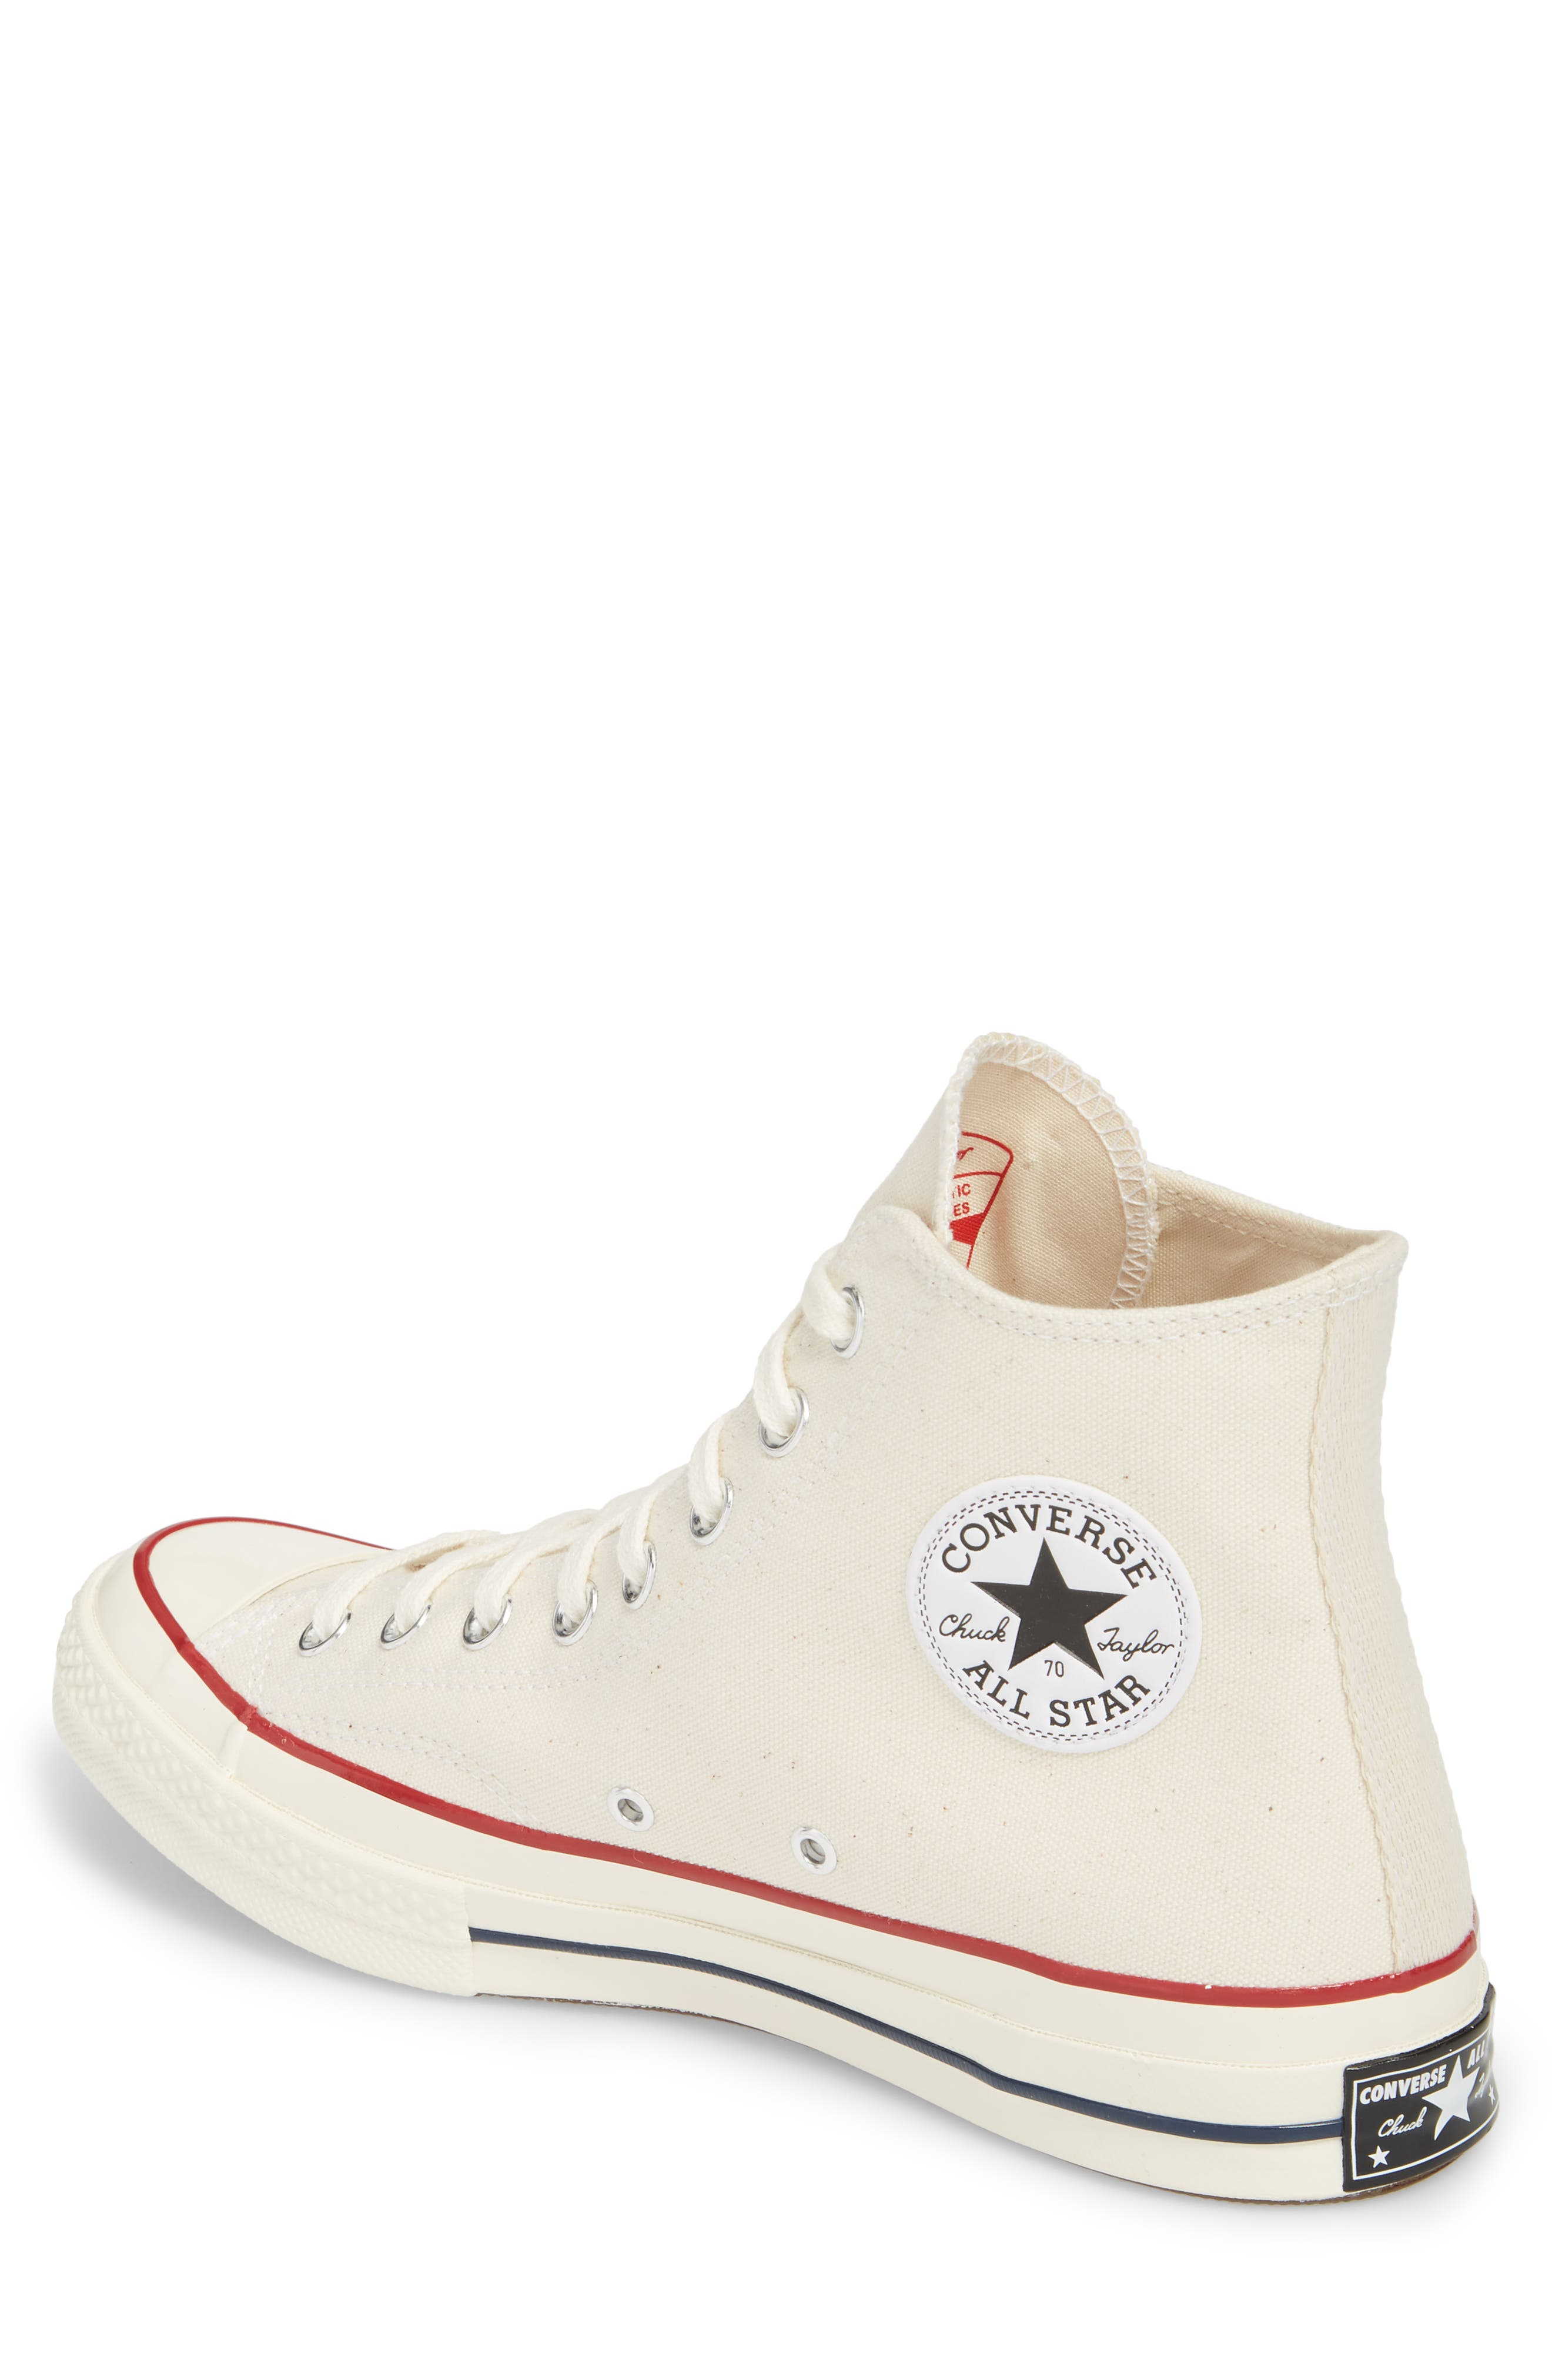 Chuck Taylor<sup>®</sup> All Star<sup>®</sup> 70 High Top Sneaker,                             Alternate thumbnail 2, color,                             Parchment